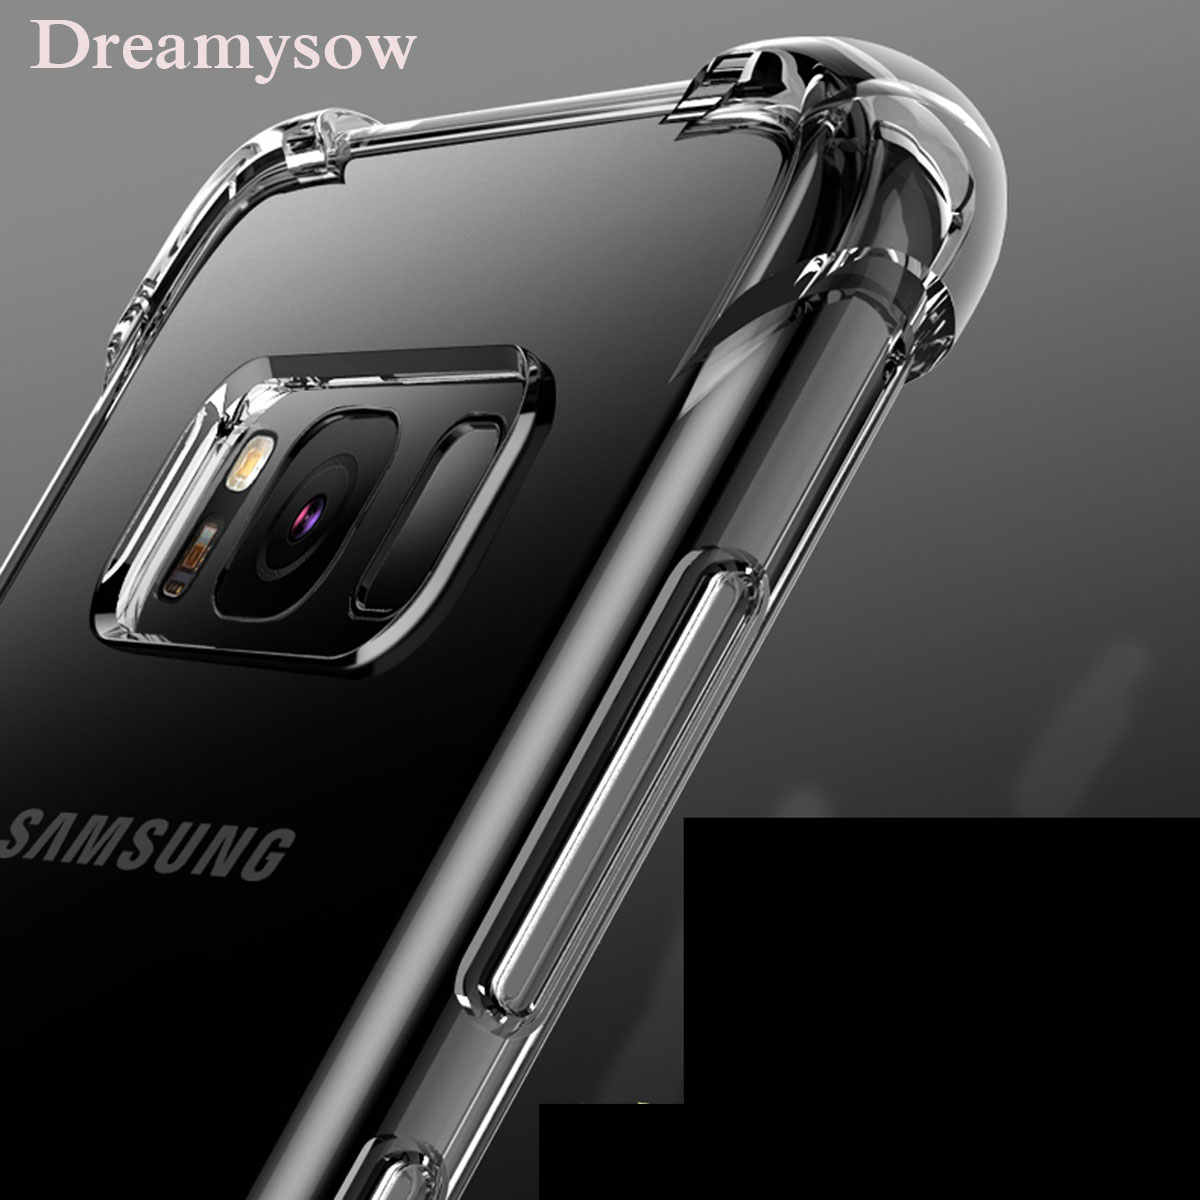 For Samsung Galaxy J2core/J260 J4 J6 J8 A6 2018 S9 S8 S7 S6 Edge Note 8 J7 J5 Prime A720 A520 Clear Soft TPU Protection Case